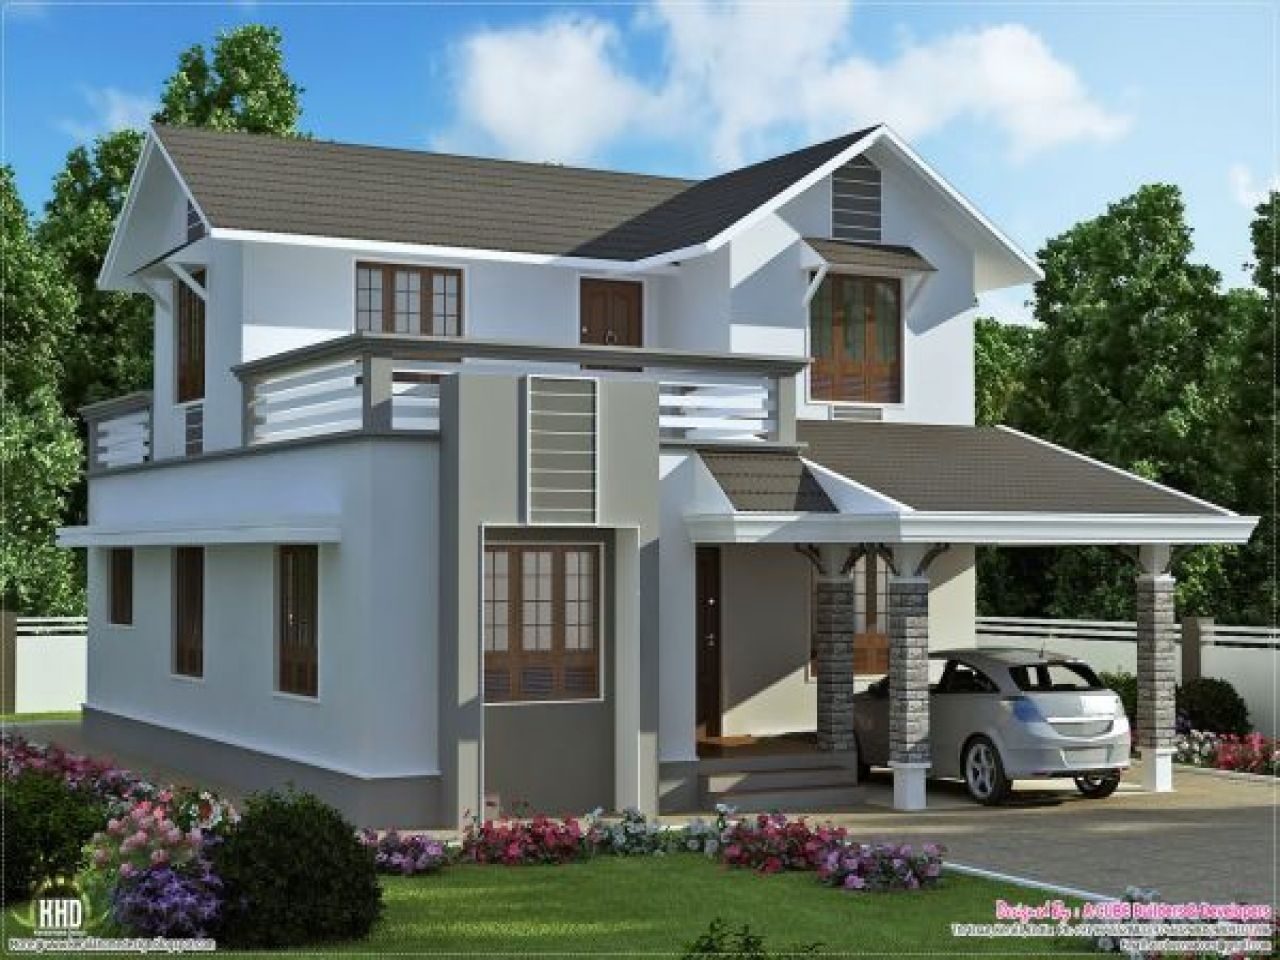 Modern small house design philippines also dream rh in pinterest